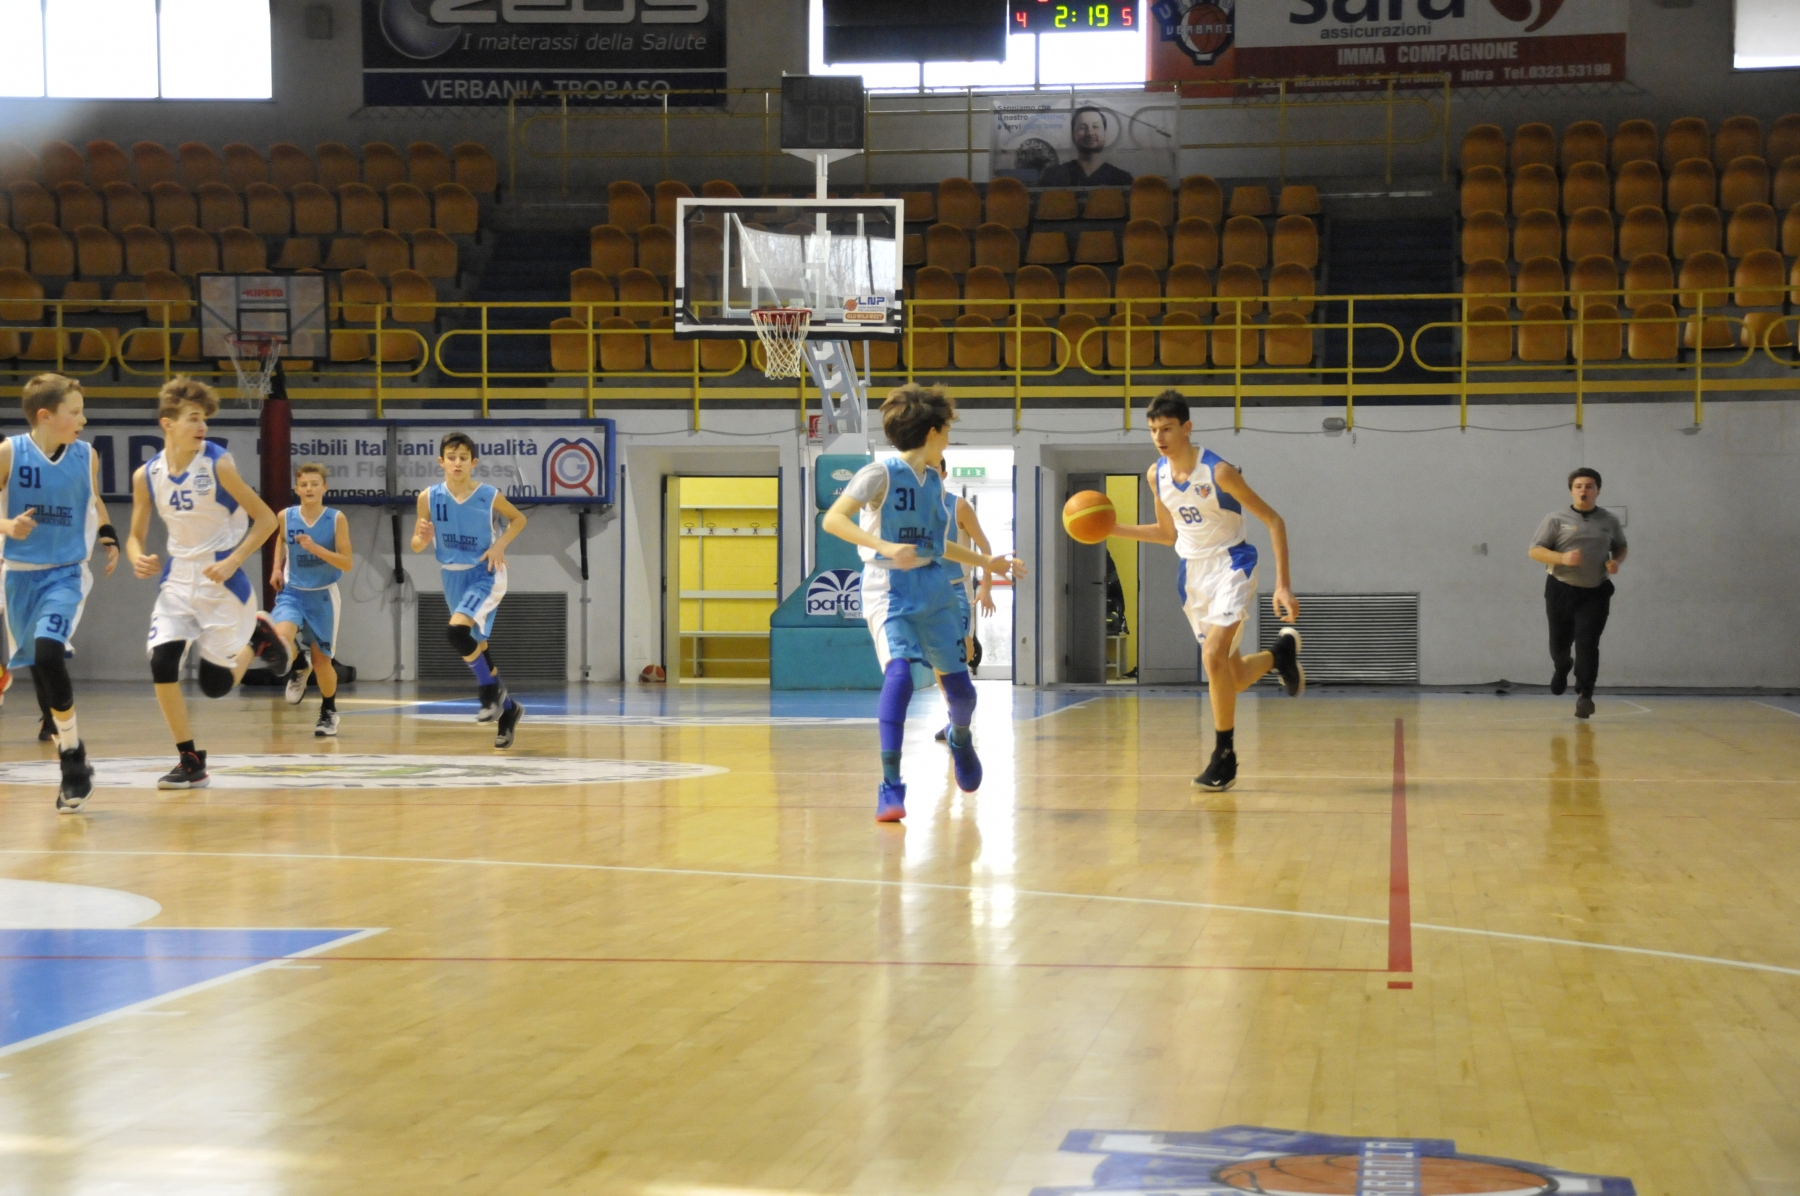 Virtus-College-U13-2020-01-25_007